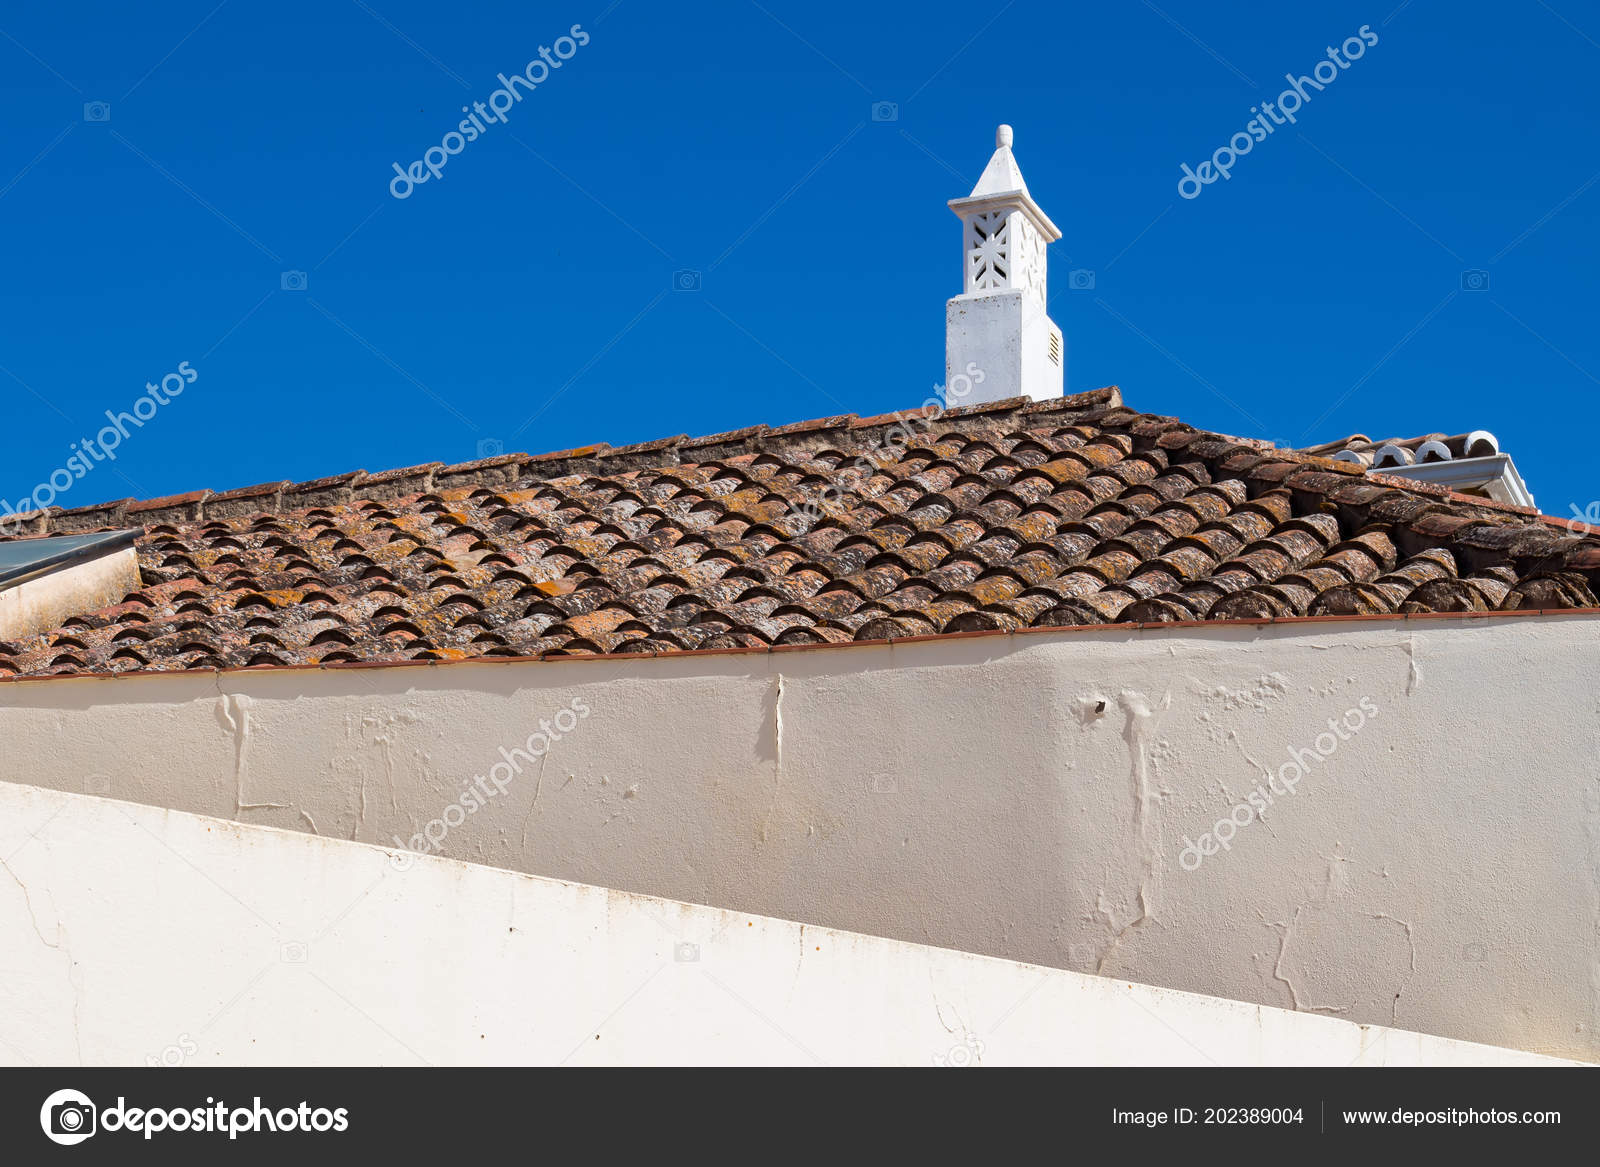 Lines White Walls House Roof Old Traditional Tiles Ornate